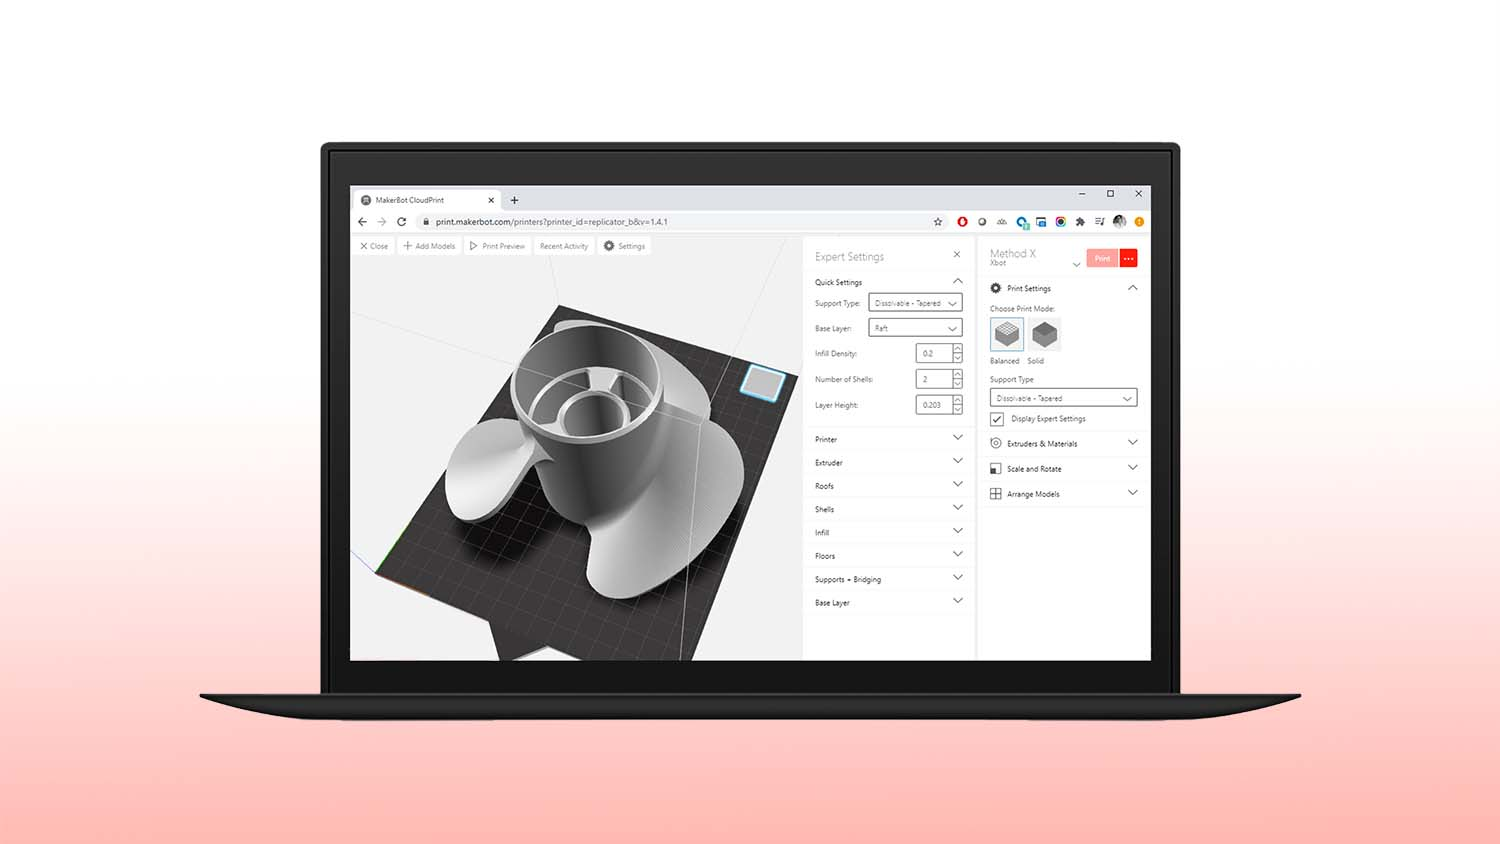 MakerBot CloudPrint User Interface